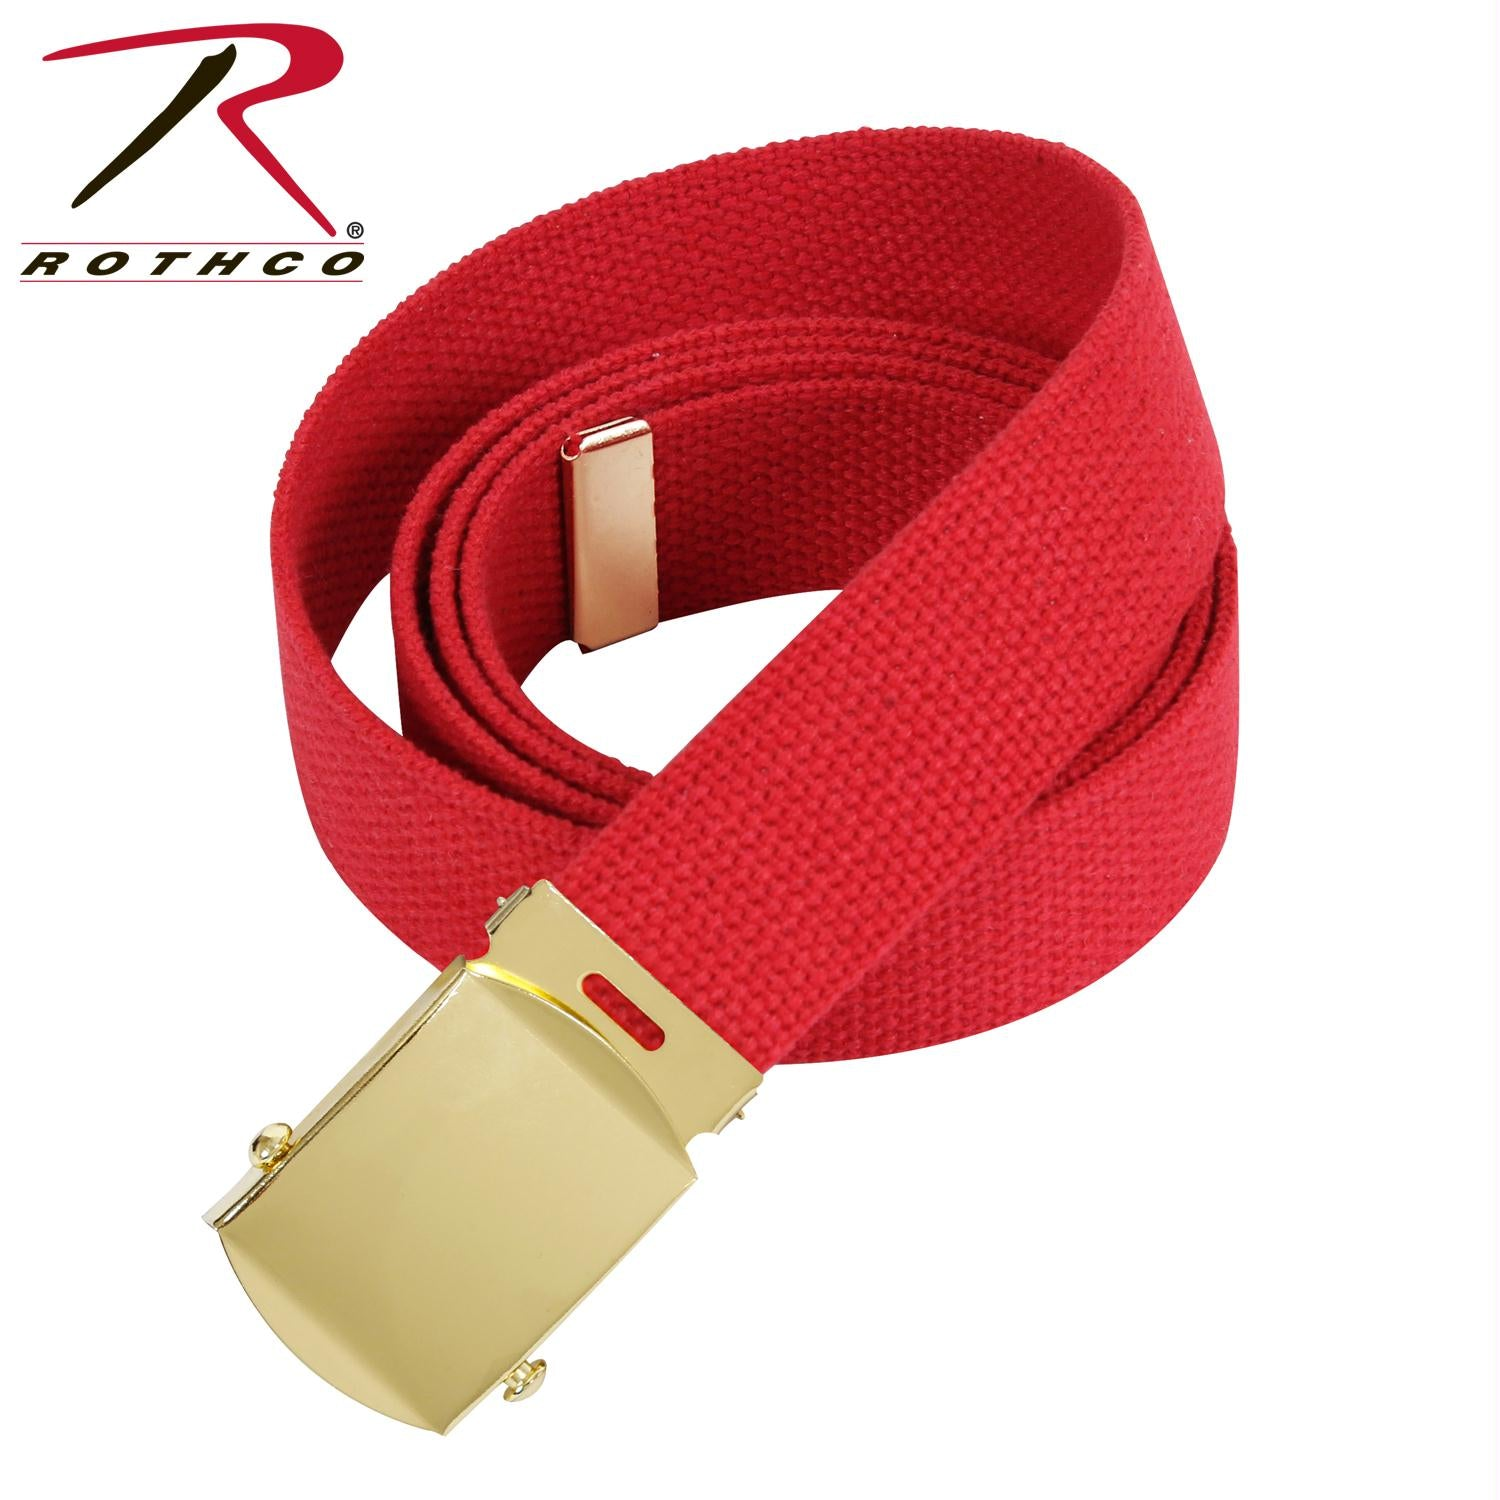 Rothco 54 Inch Military Web Belts - Gold / Red